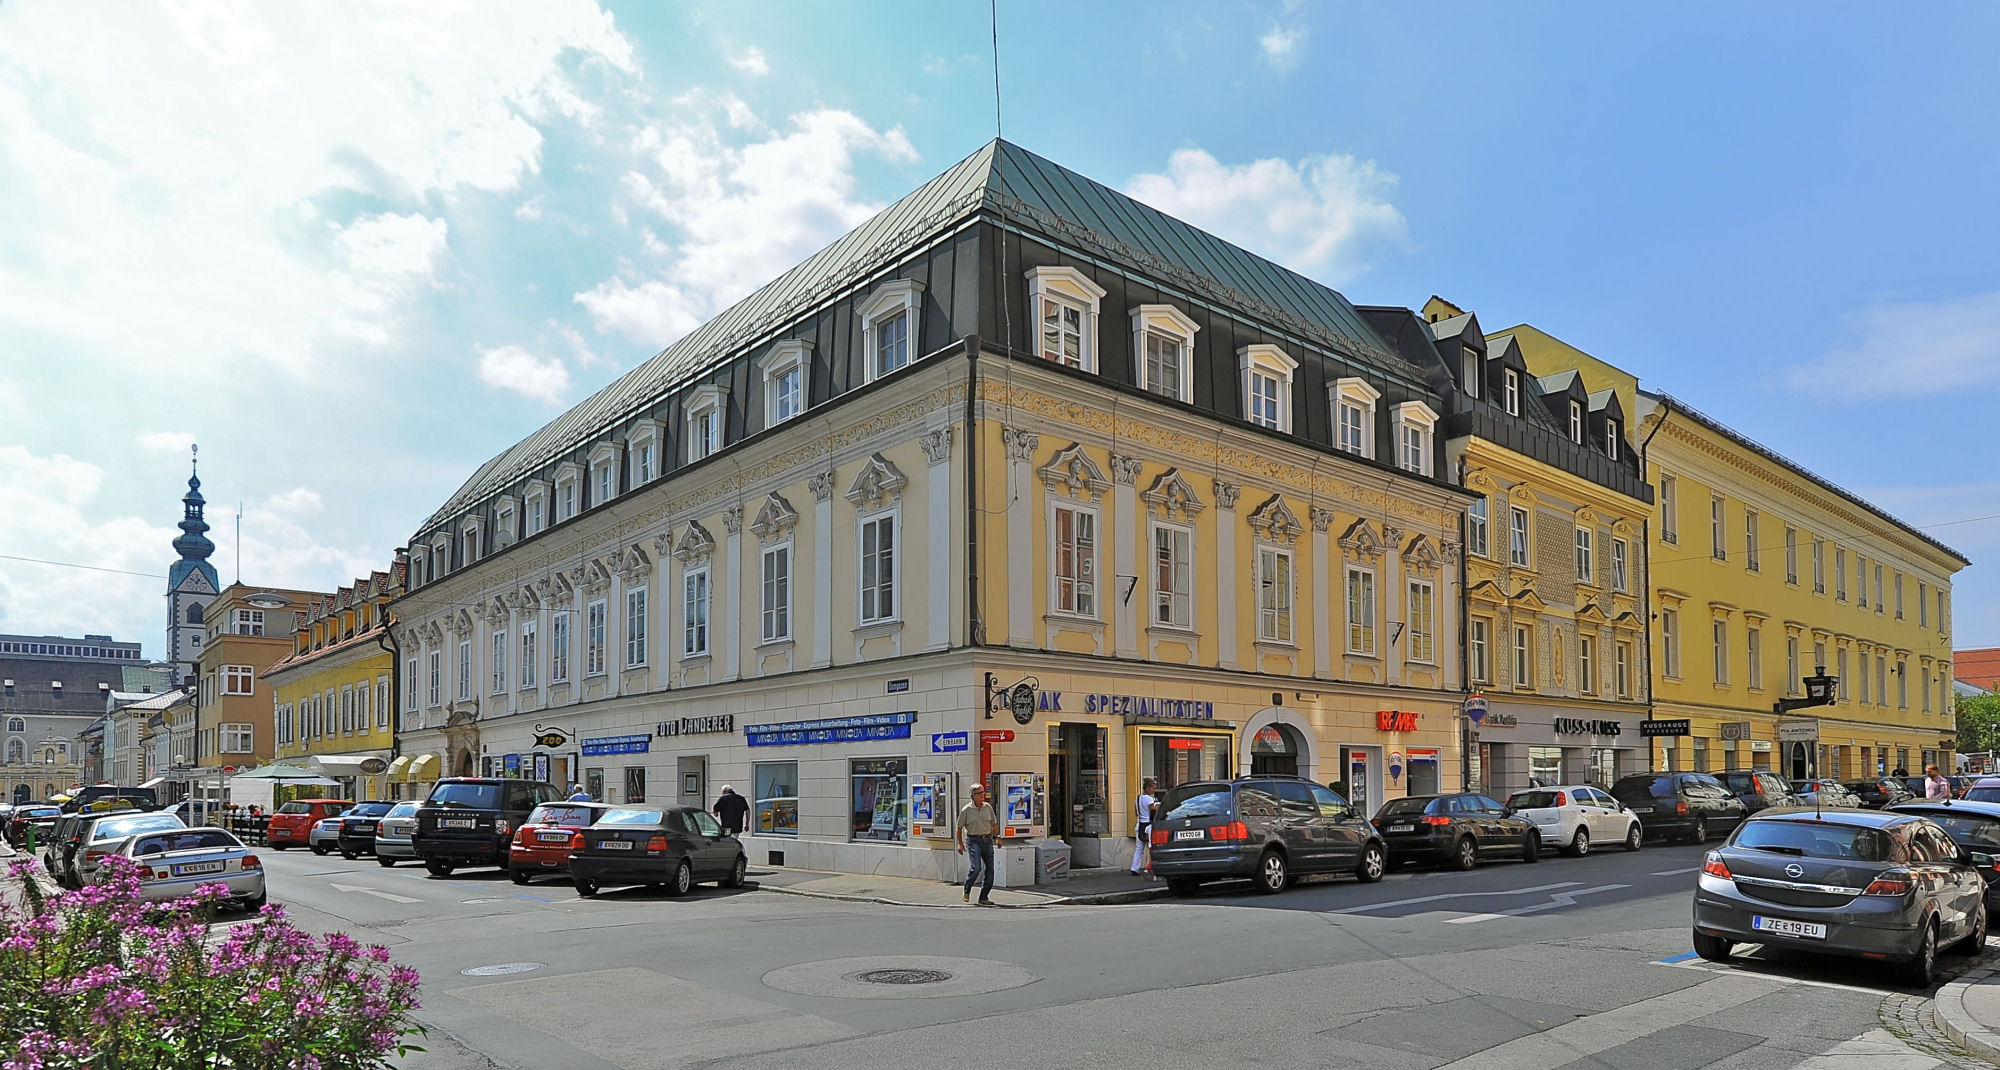 Middle-class house in Klagenfurt, capital of the state Carinthia, Austria